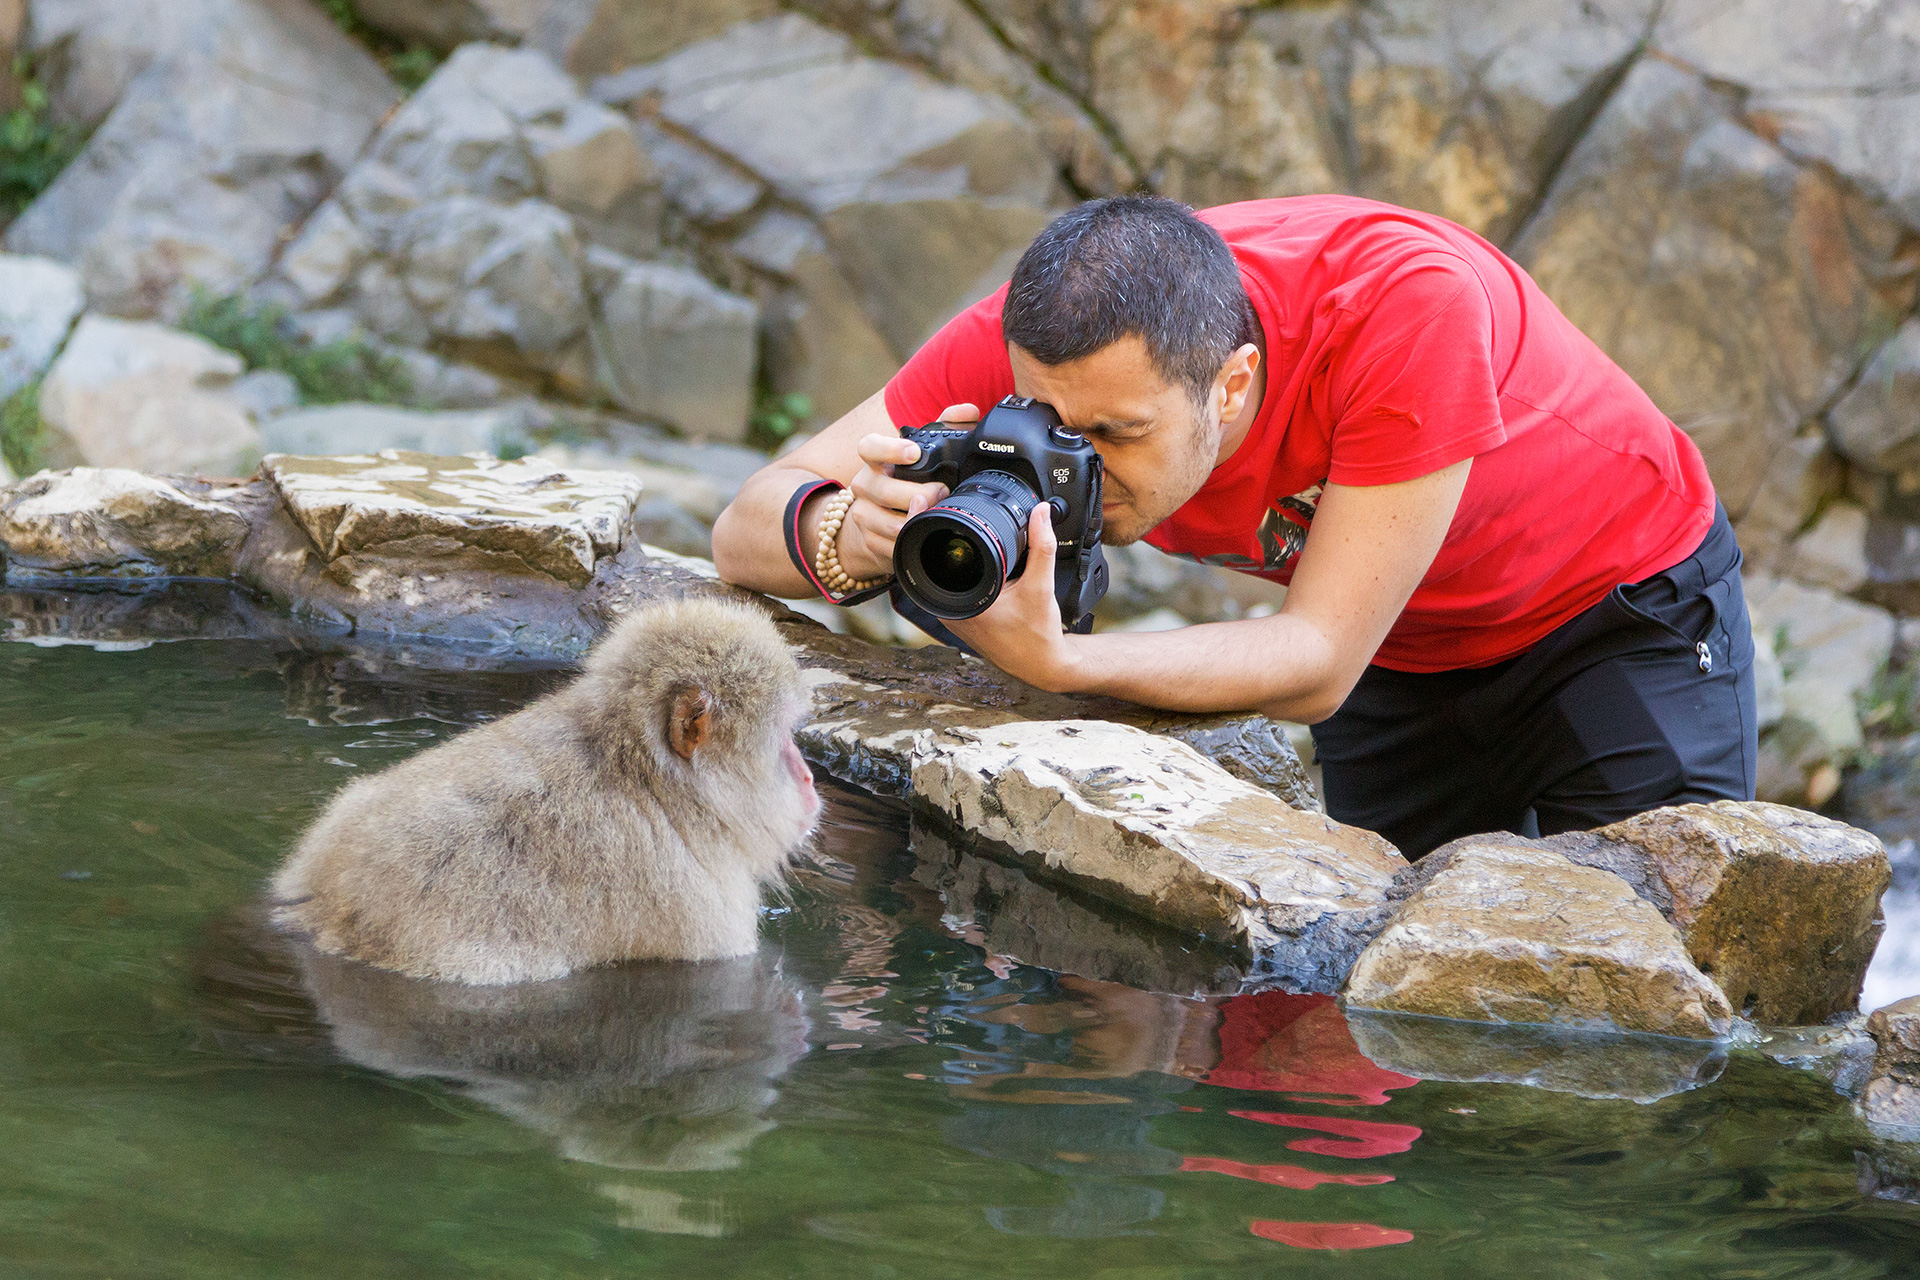 Francesco Cinque reportage snow monkeys Giappone